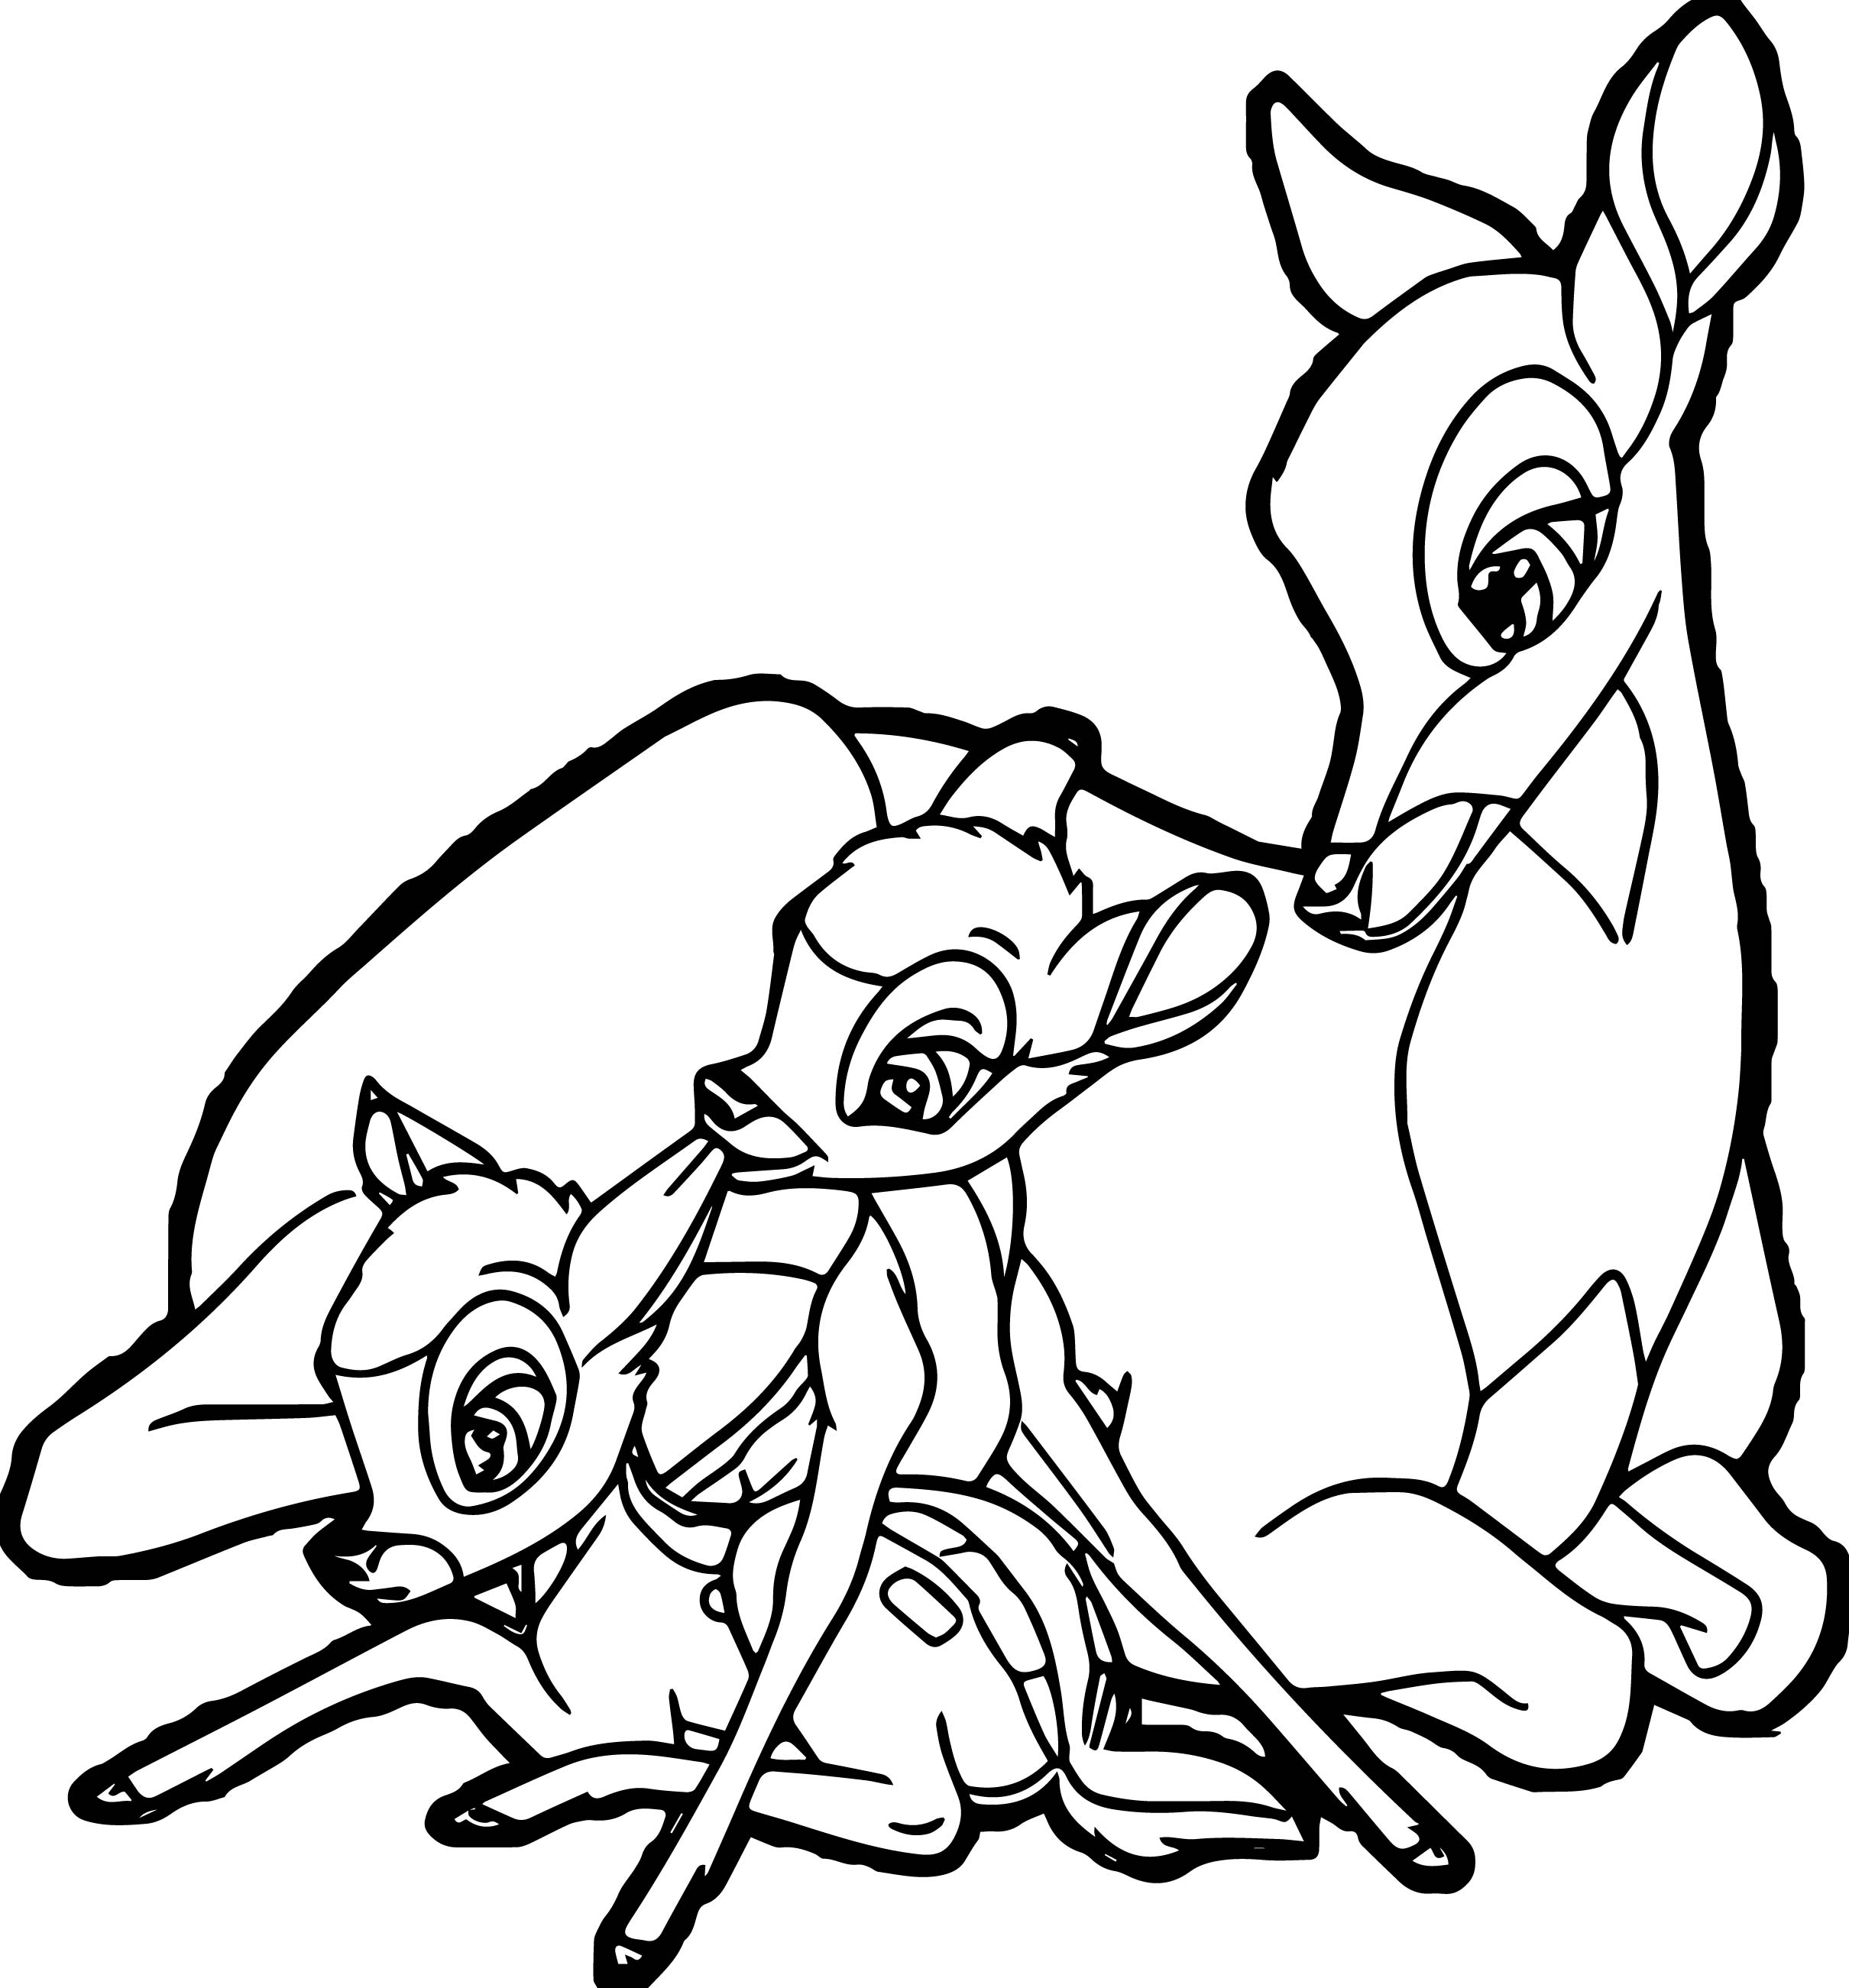 2420x2602 Bambi Mother Child Deers Coloring Pages Wecoloringpage